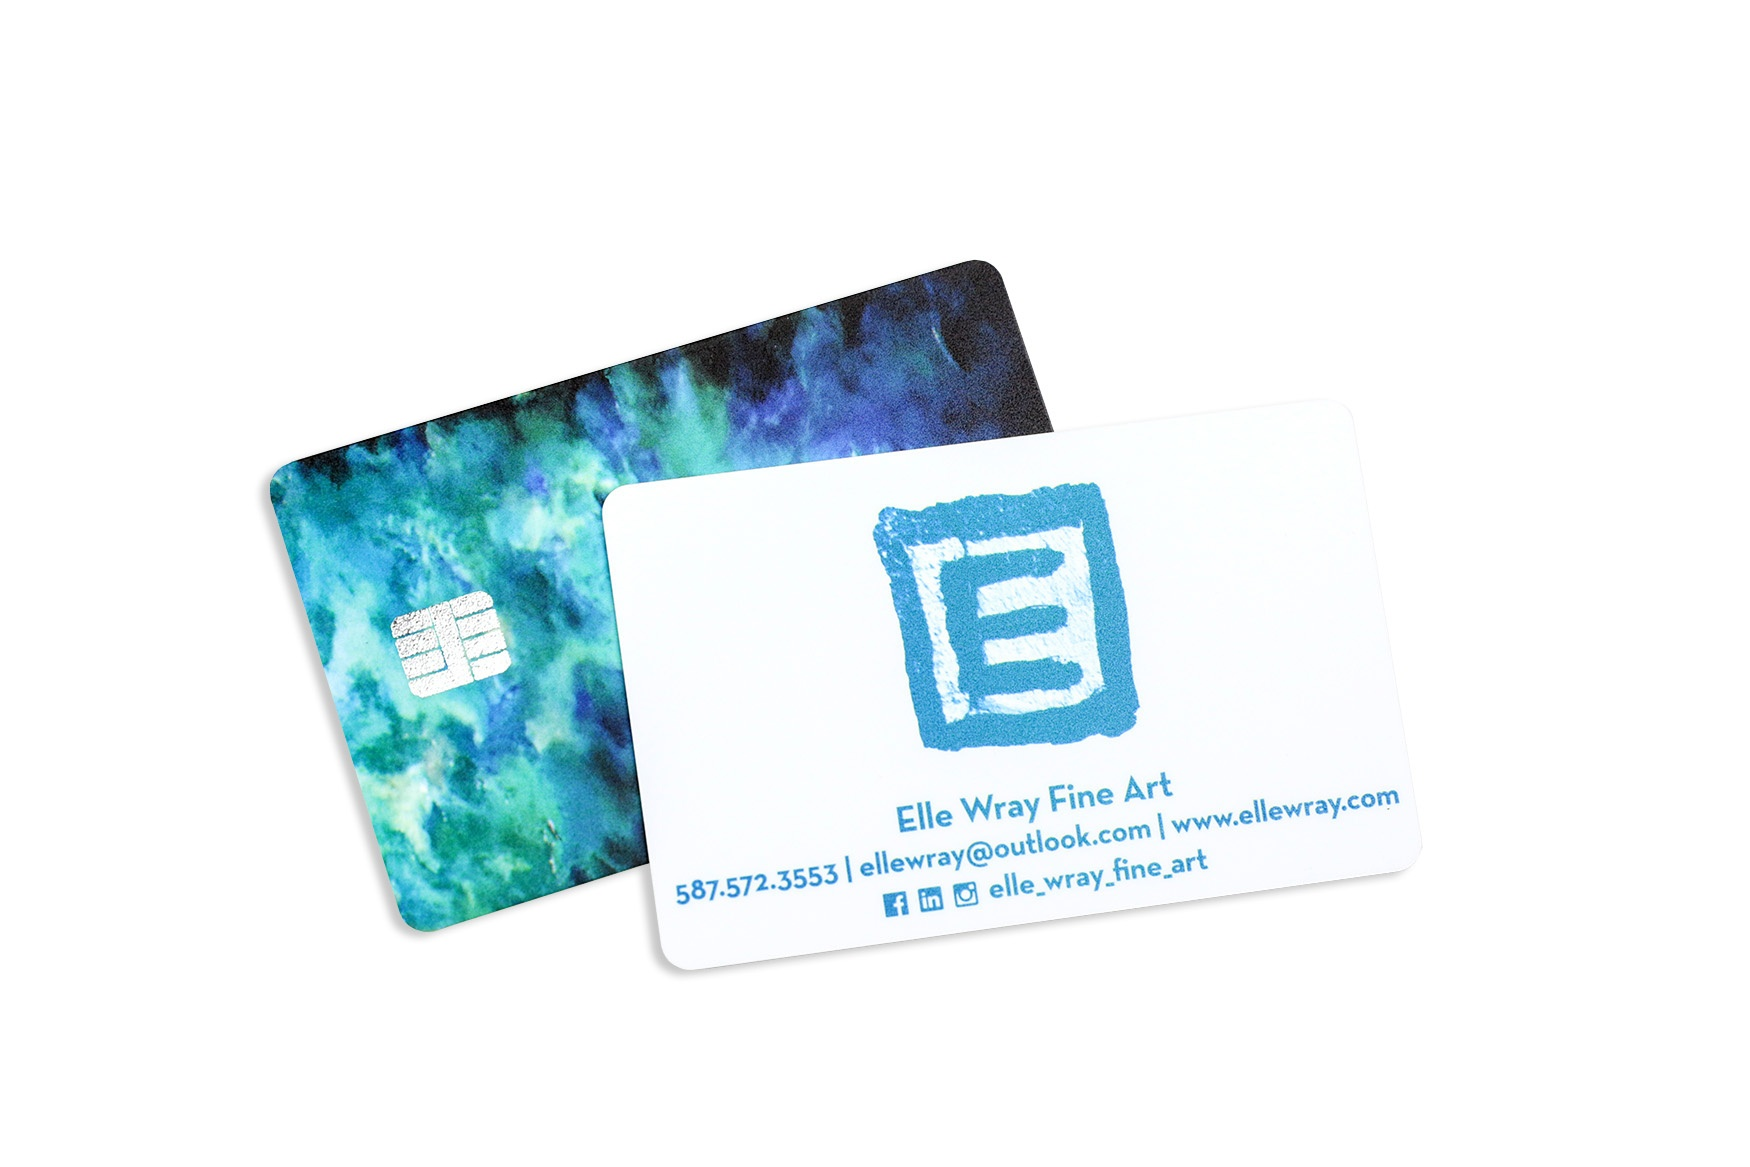 Elle Wray Fine Art Business Card